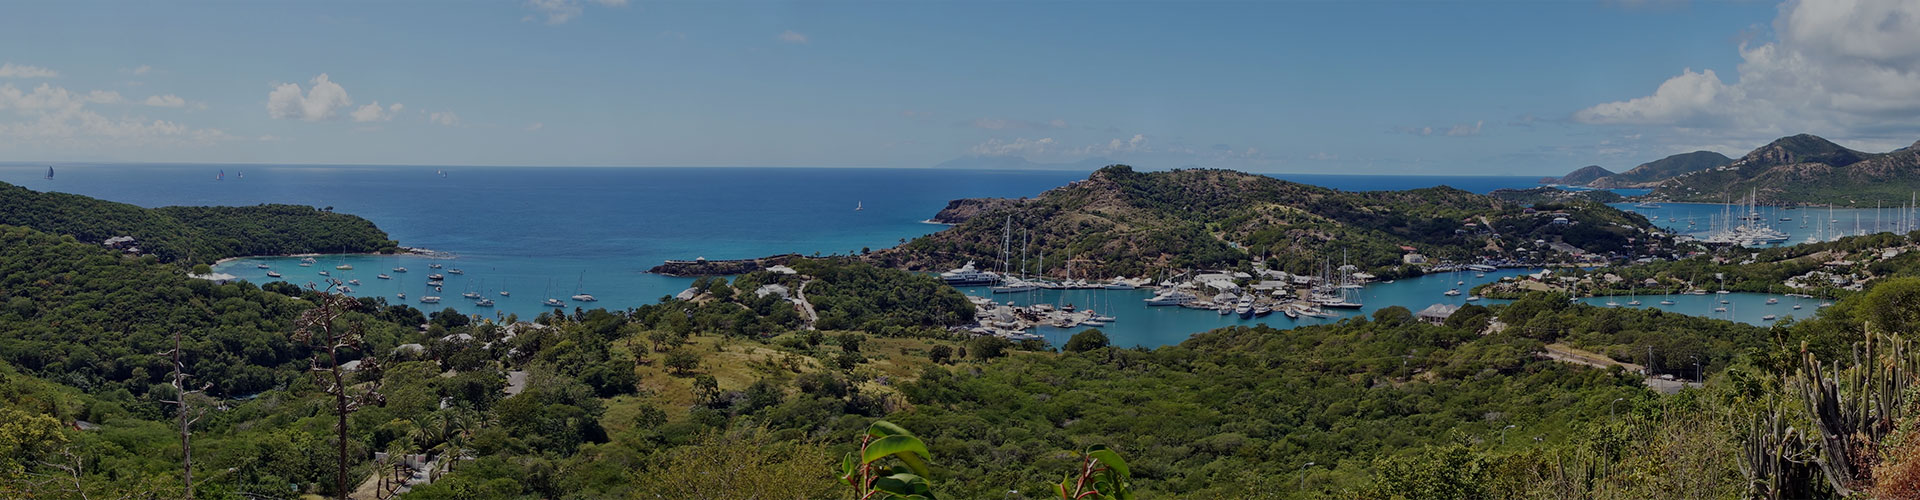 Landmark photograph of Antigua & Barbuda